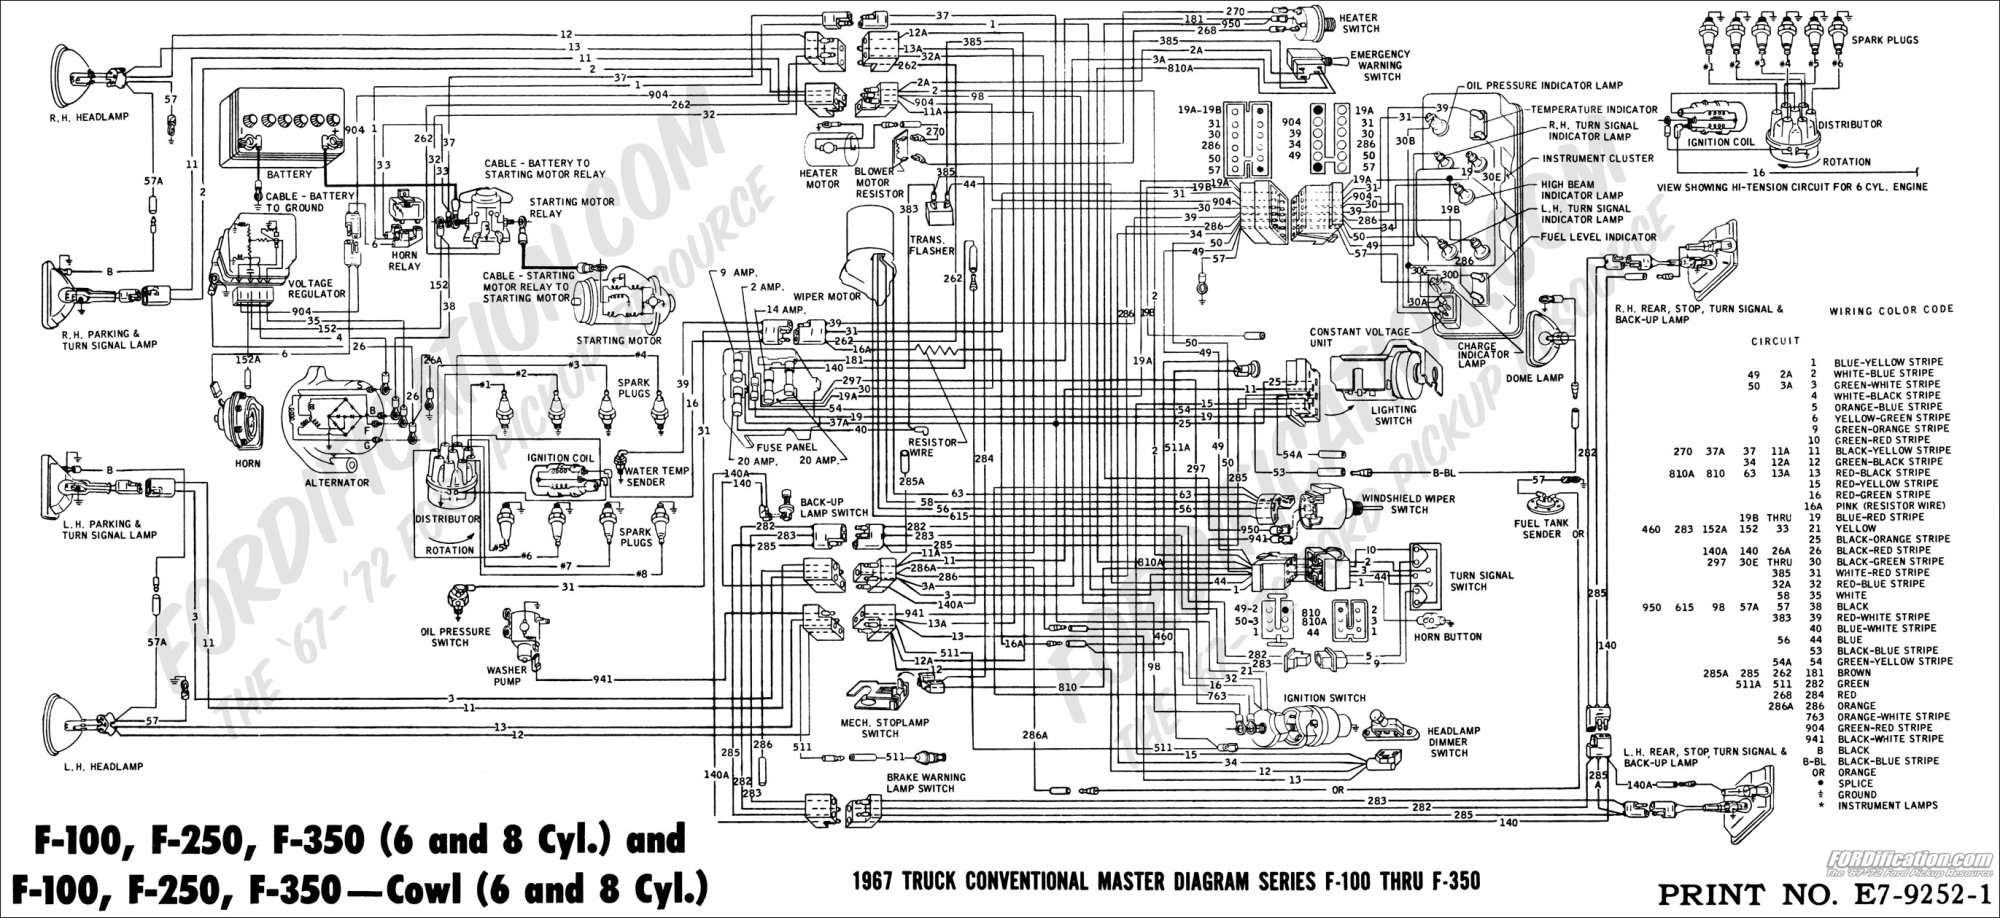 hight resolution of 1967 ford f150 wiring diagram wiring diagram third level ford f150 wiring diagram ford diagrams schematics